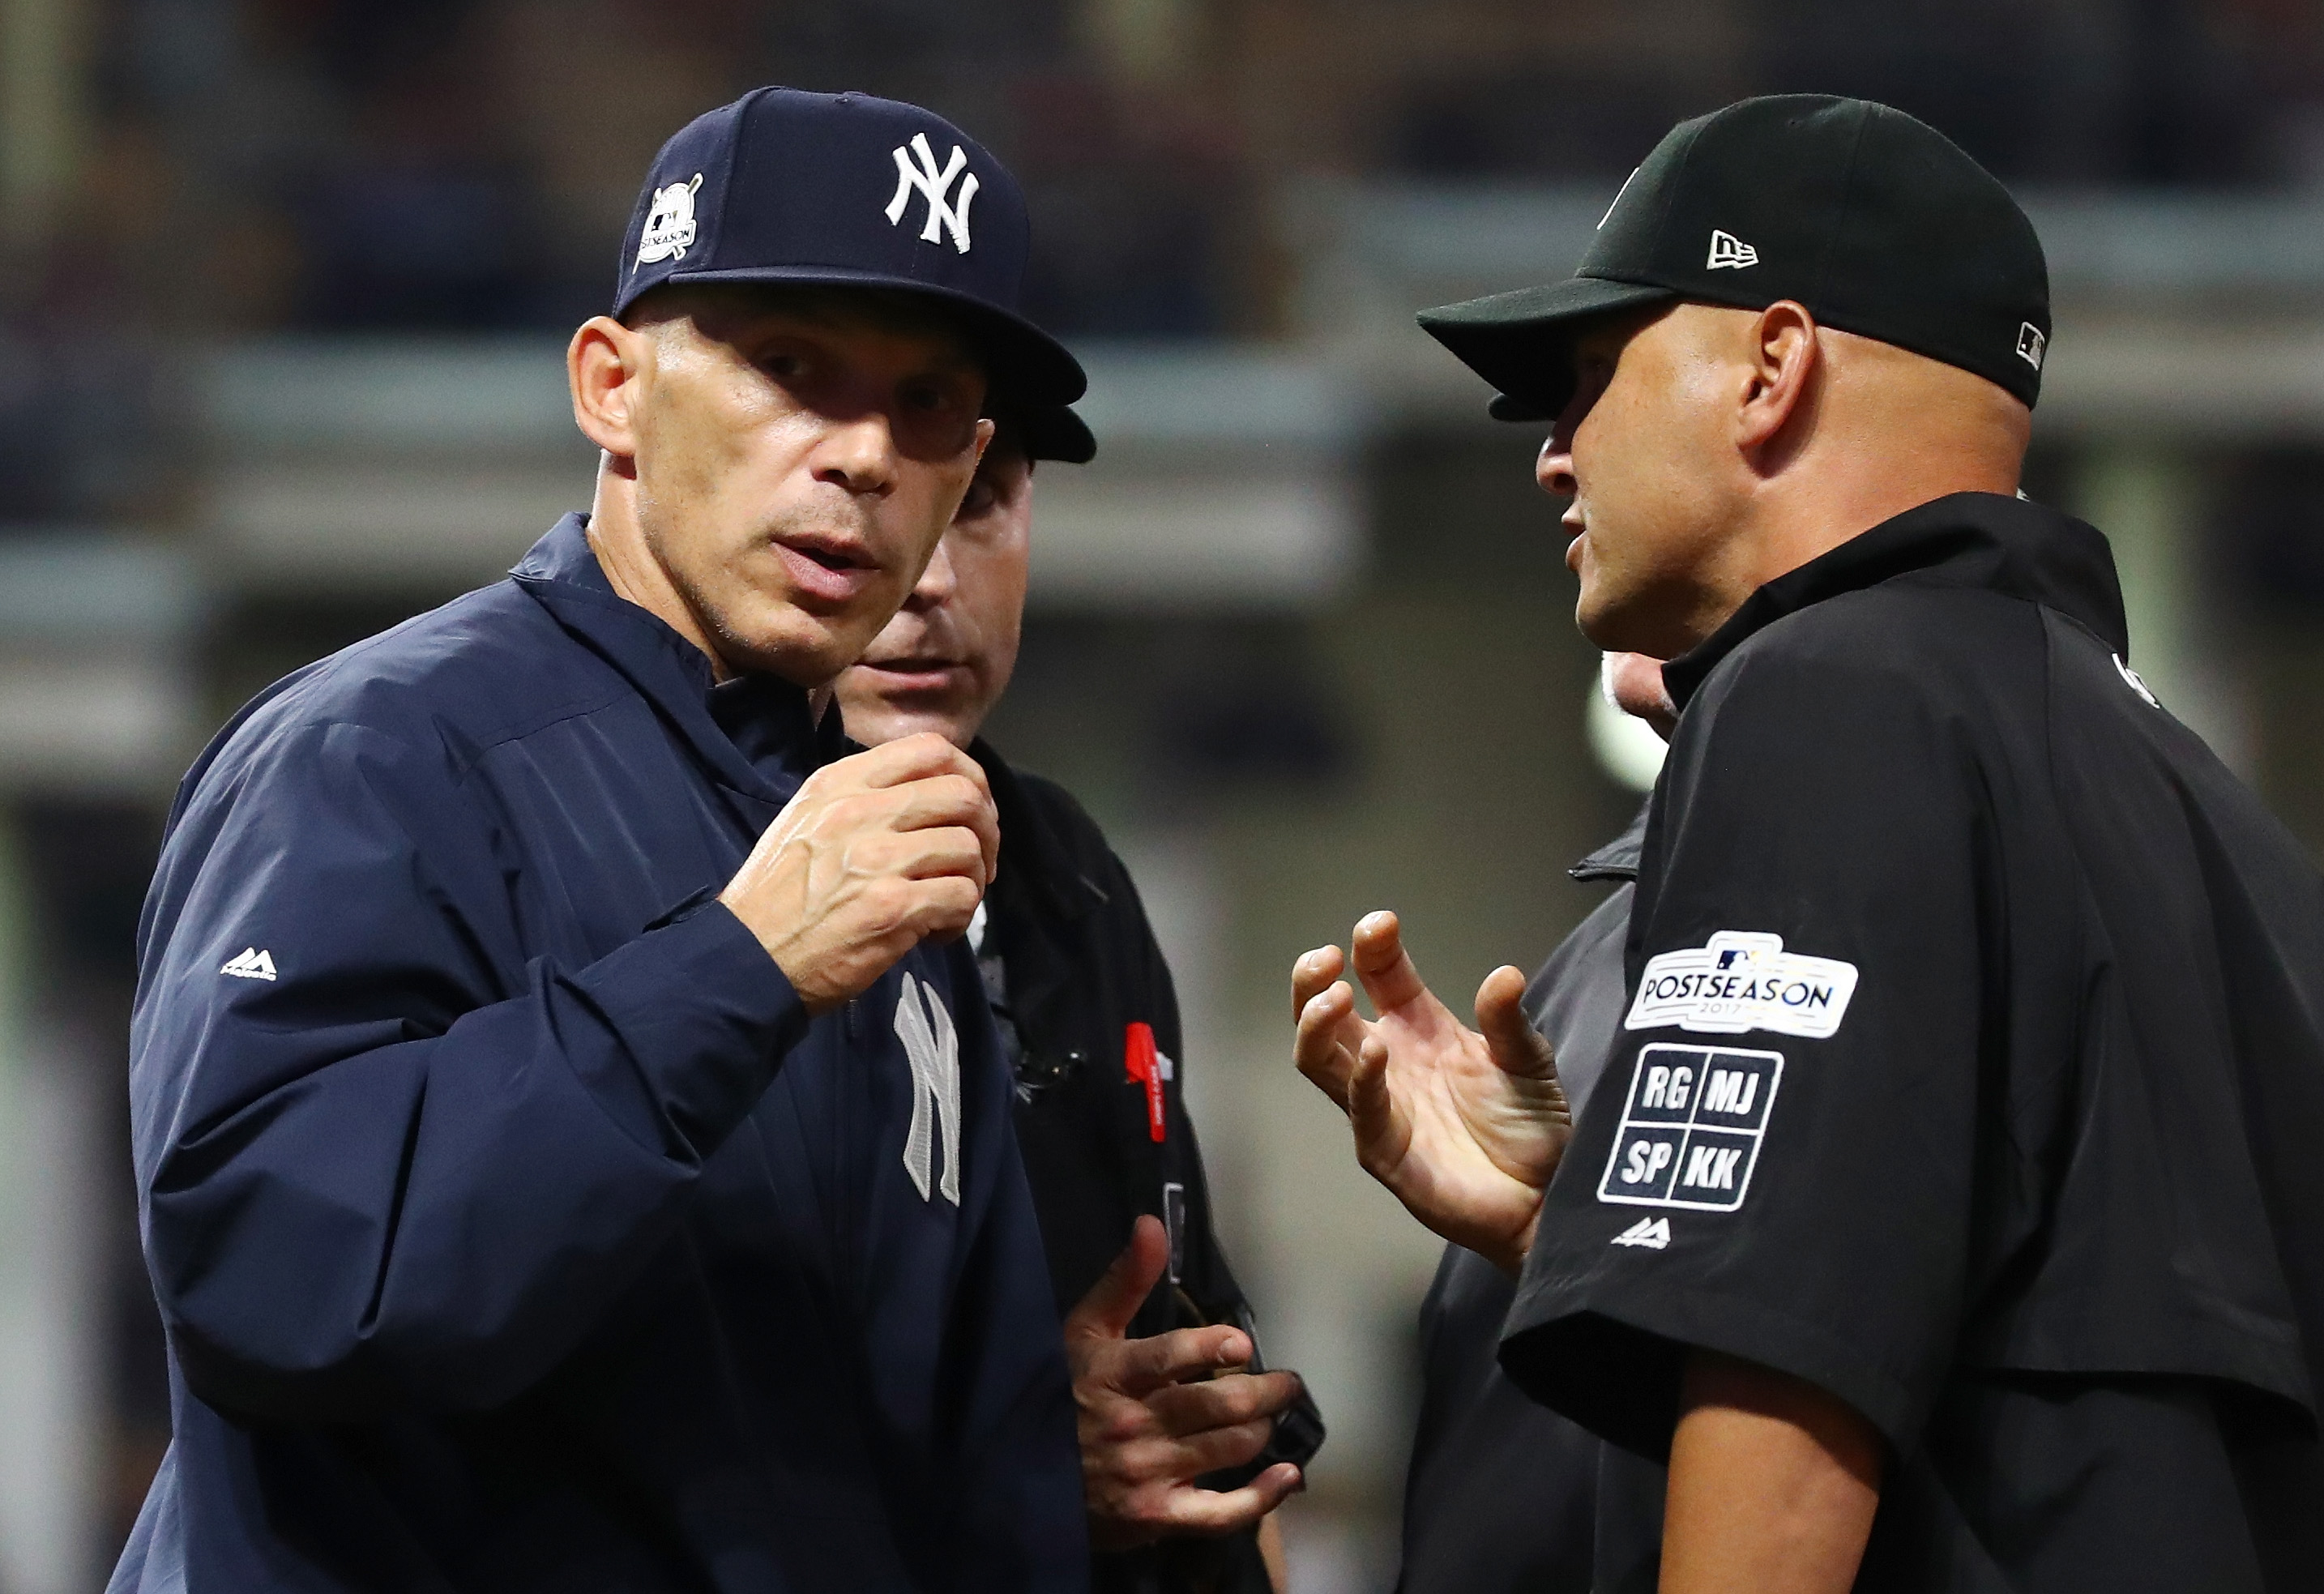 Joe Girardi says he 'screwed up' by not challenging HBP call